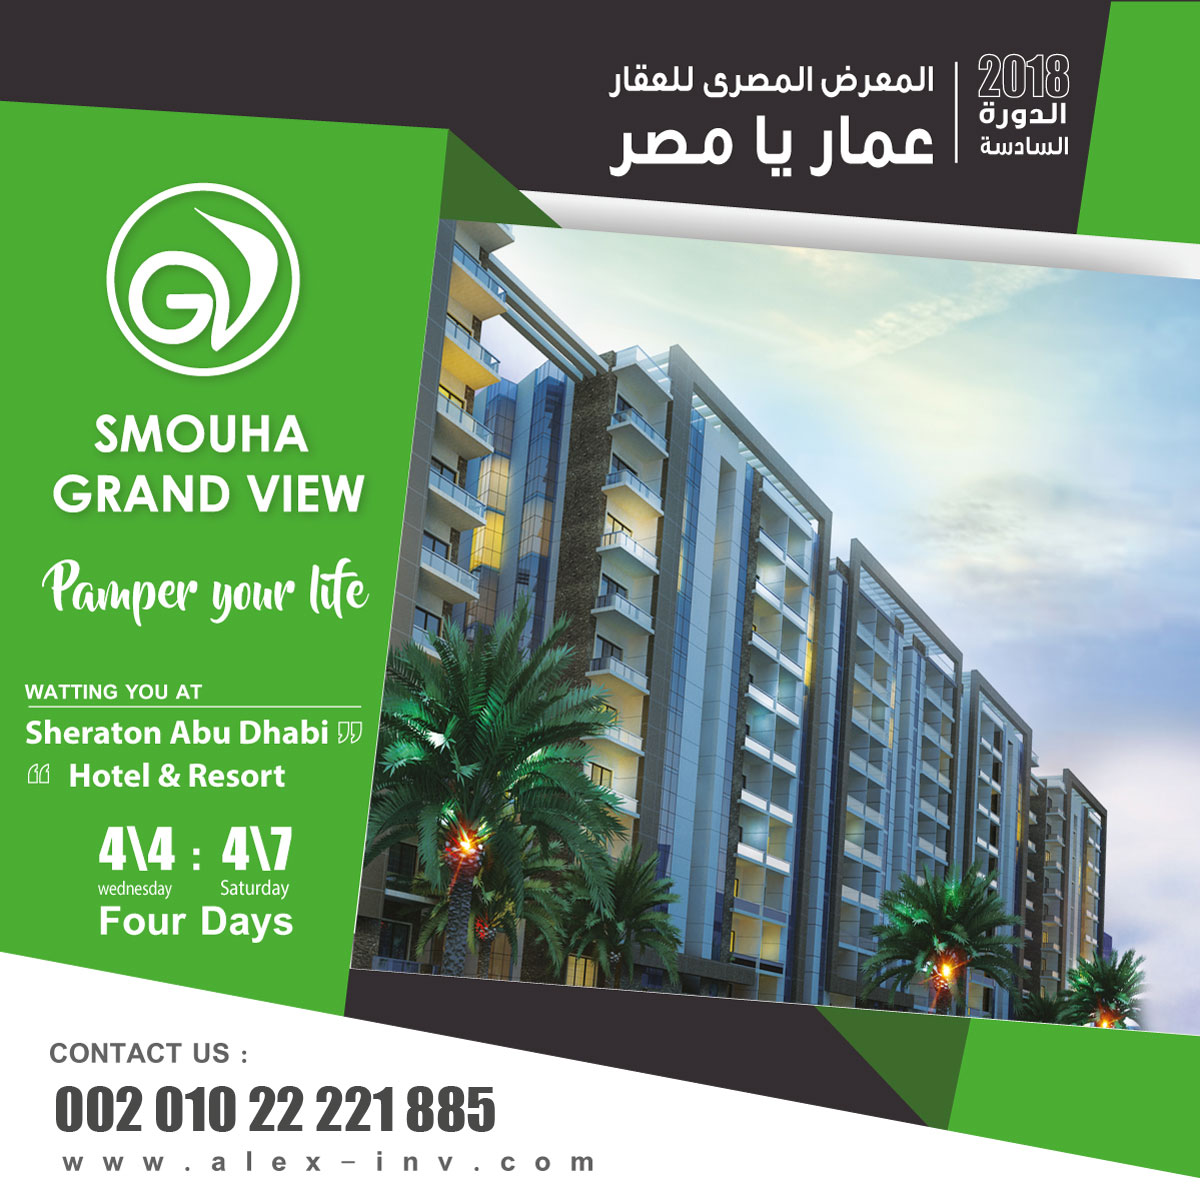 wait forr's at Amaar ya masr Exibition at sheraton Abu -Dhabi ( UAE ) from 4 /4 /2018 to 7 /4 /2018 .    Smouha Grand View offe